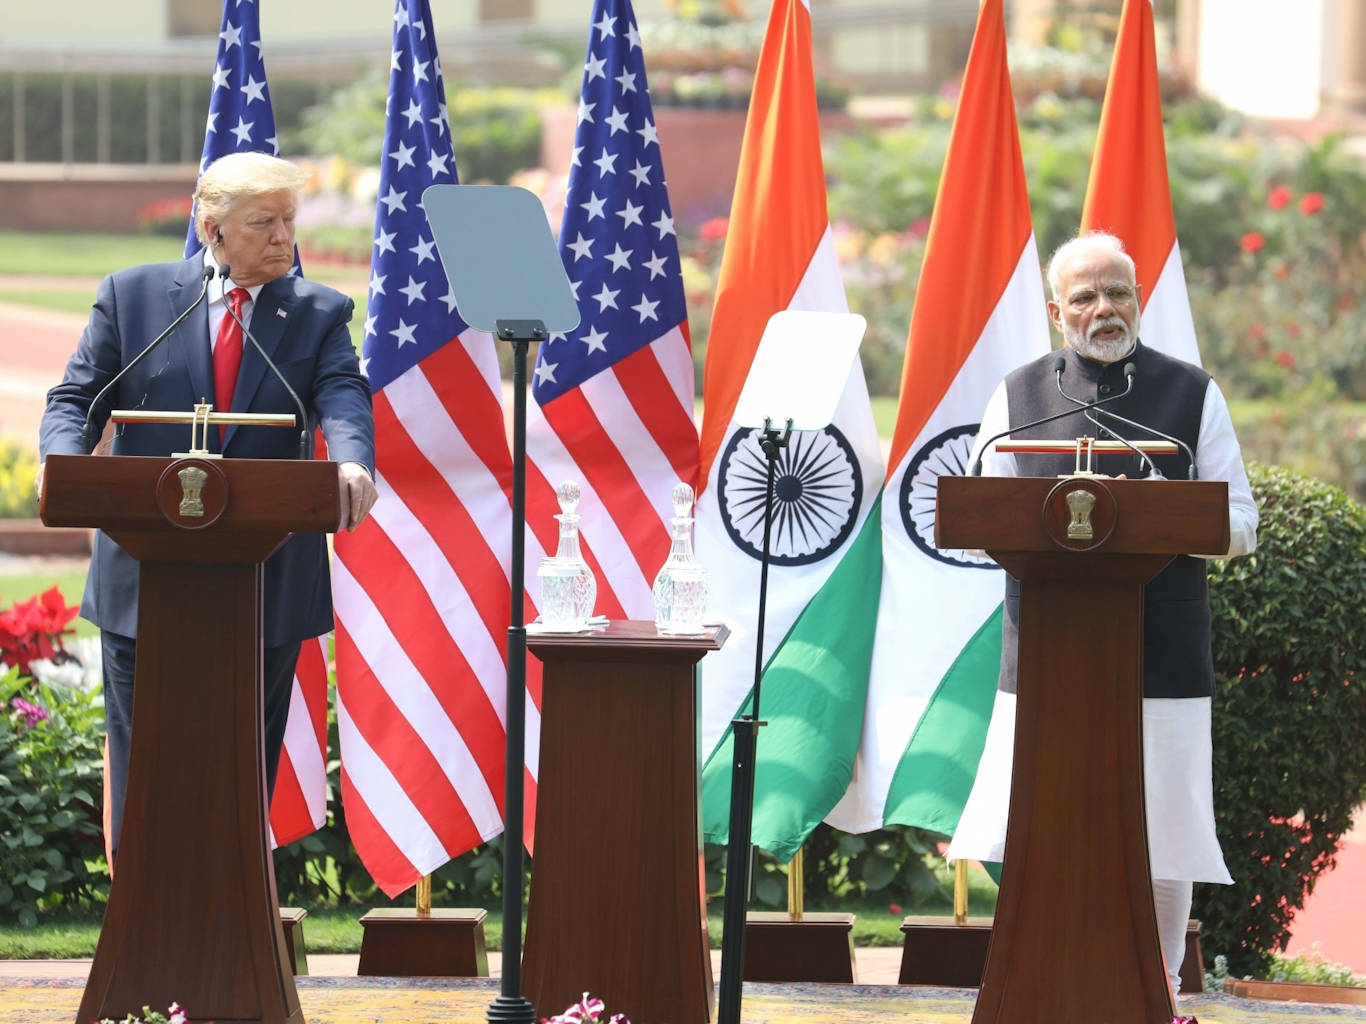 Human spaceflight may take India-US relations to new heights as space diplomacy gains importance